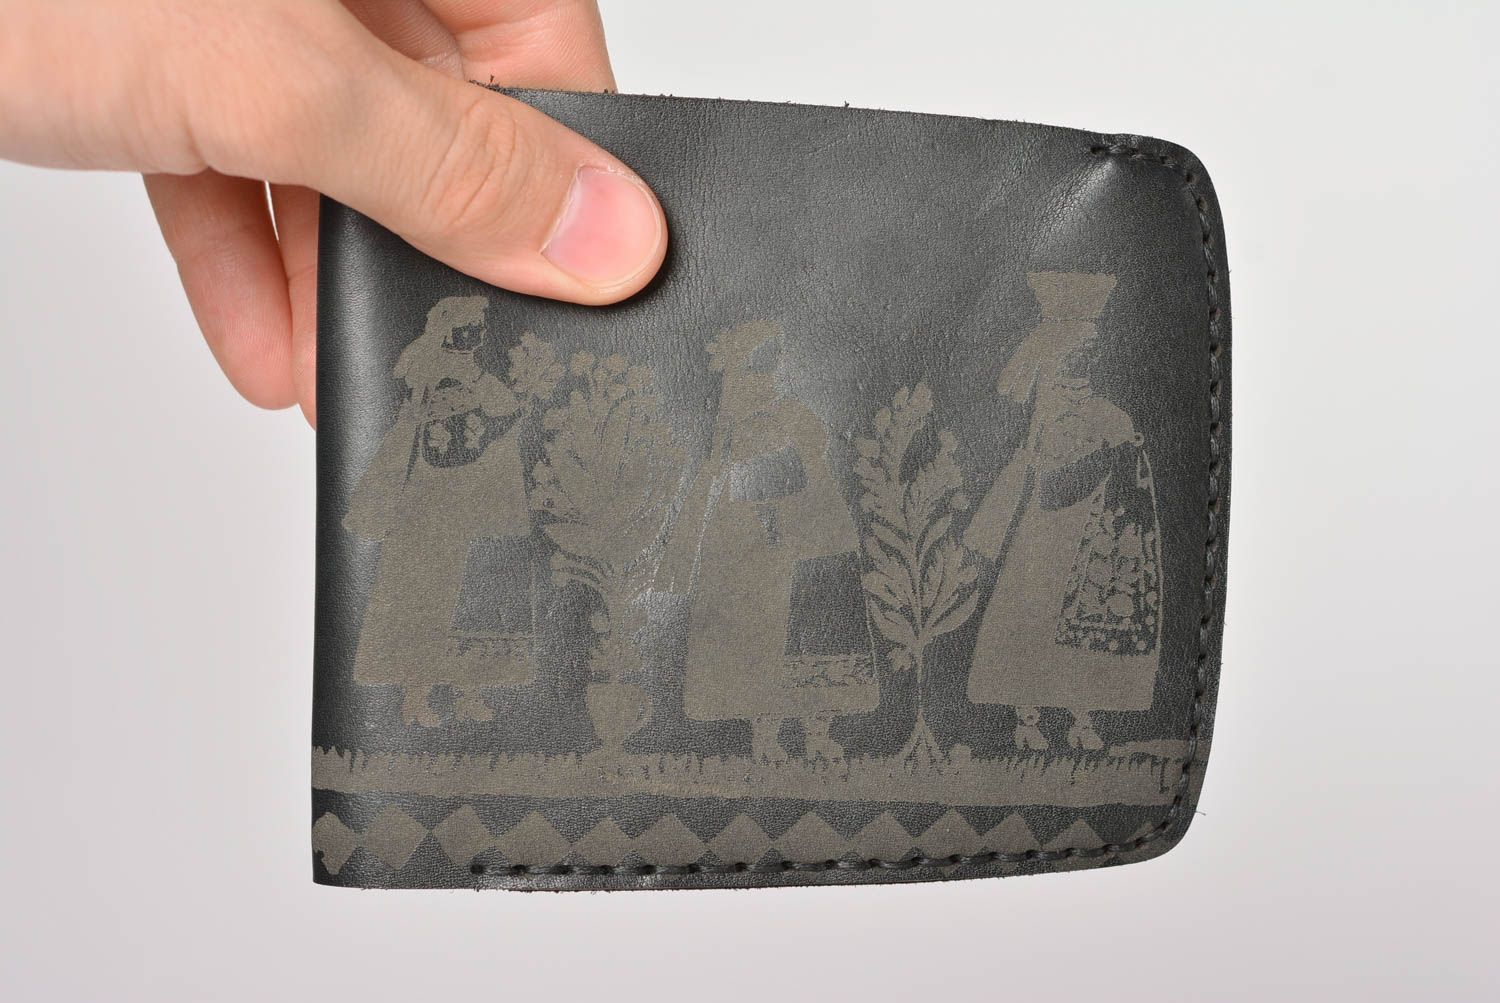 Handmade leather wallet designer wallets leather purses handmade leather goods photo 4